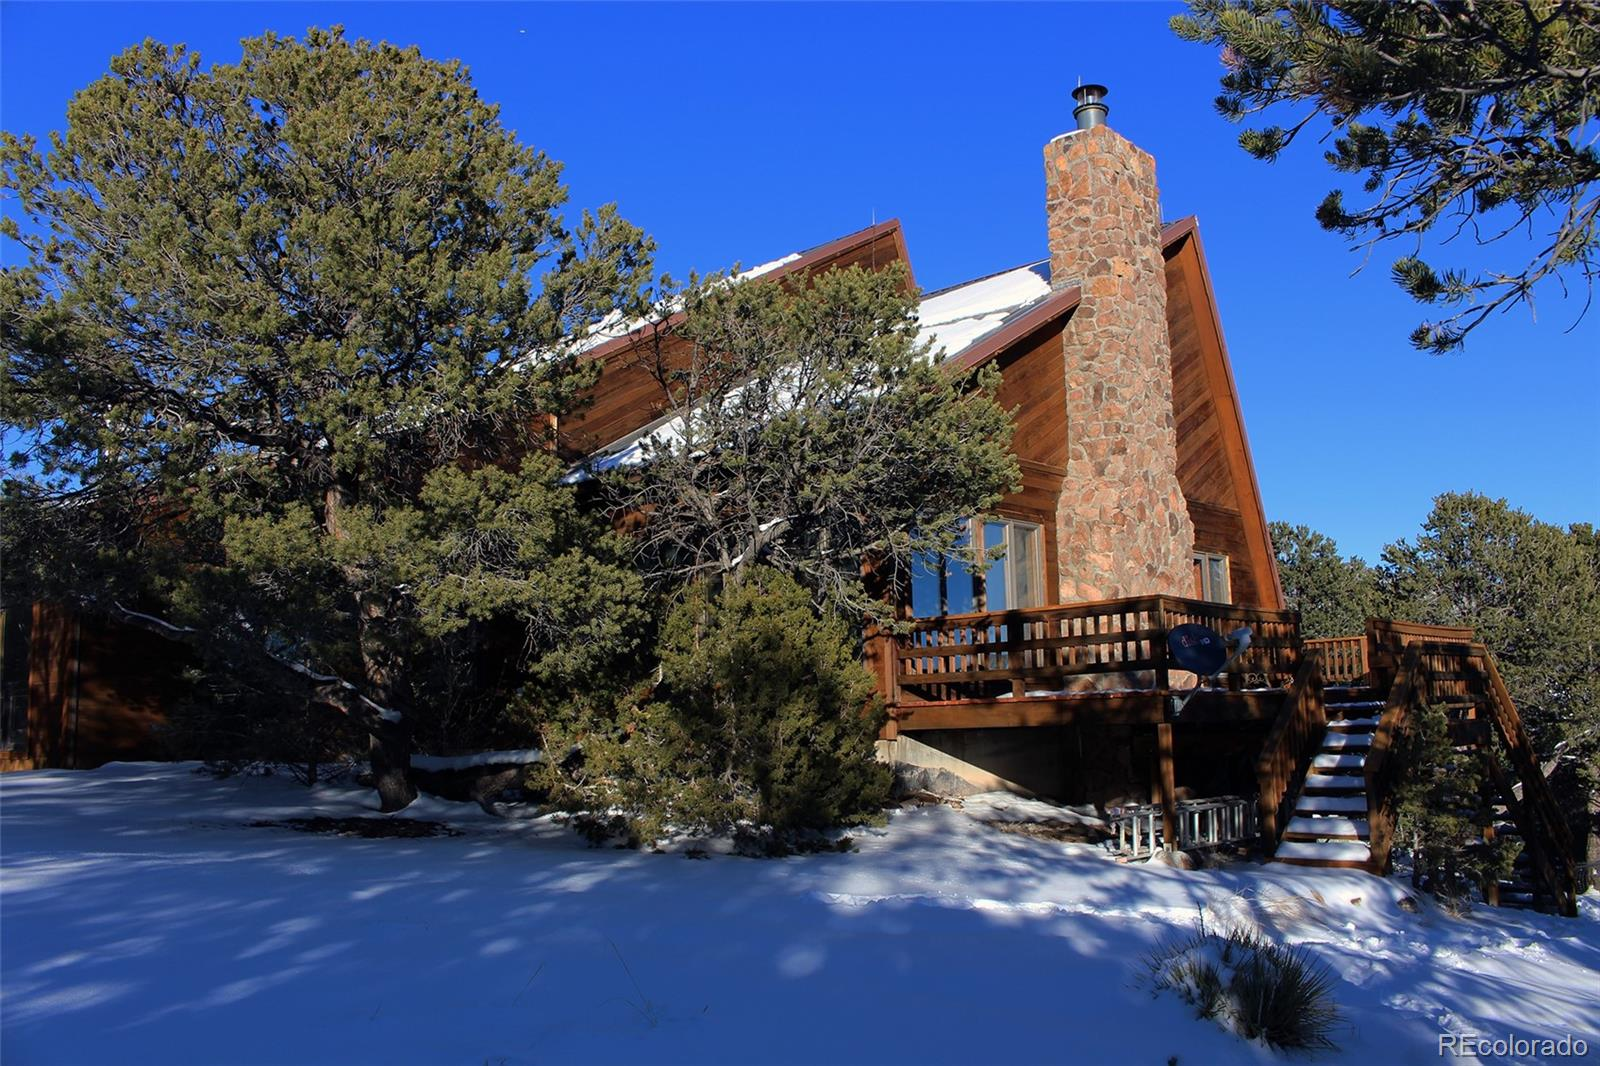 Come check out this custom home in beautiful setting bordering BLM.  This very unique design offers spacious living with high vaulted ceilings and full ground to roof rock fire place.  The master suite is set in a bright sunny room with it's own Kiva fireplace.  There is a oversized garage and 31 x 19 attached shop/studio on the ground floor.  The views from the south facing deck of the Twin Sisters are stunning. There are many hiking trails and places to discover surrounding the property.  Quite, peaceful living at it's best.